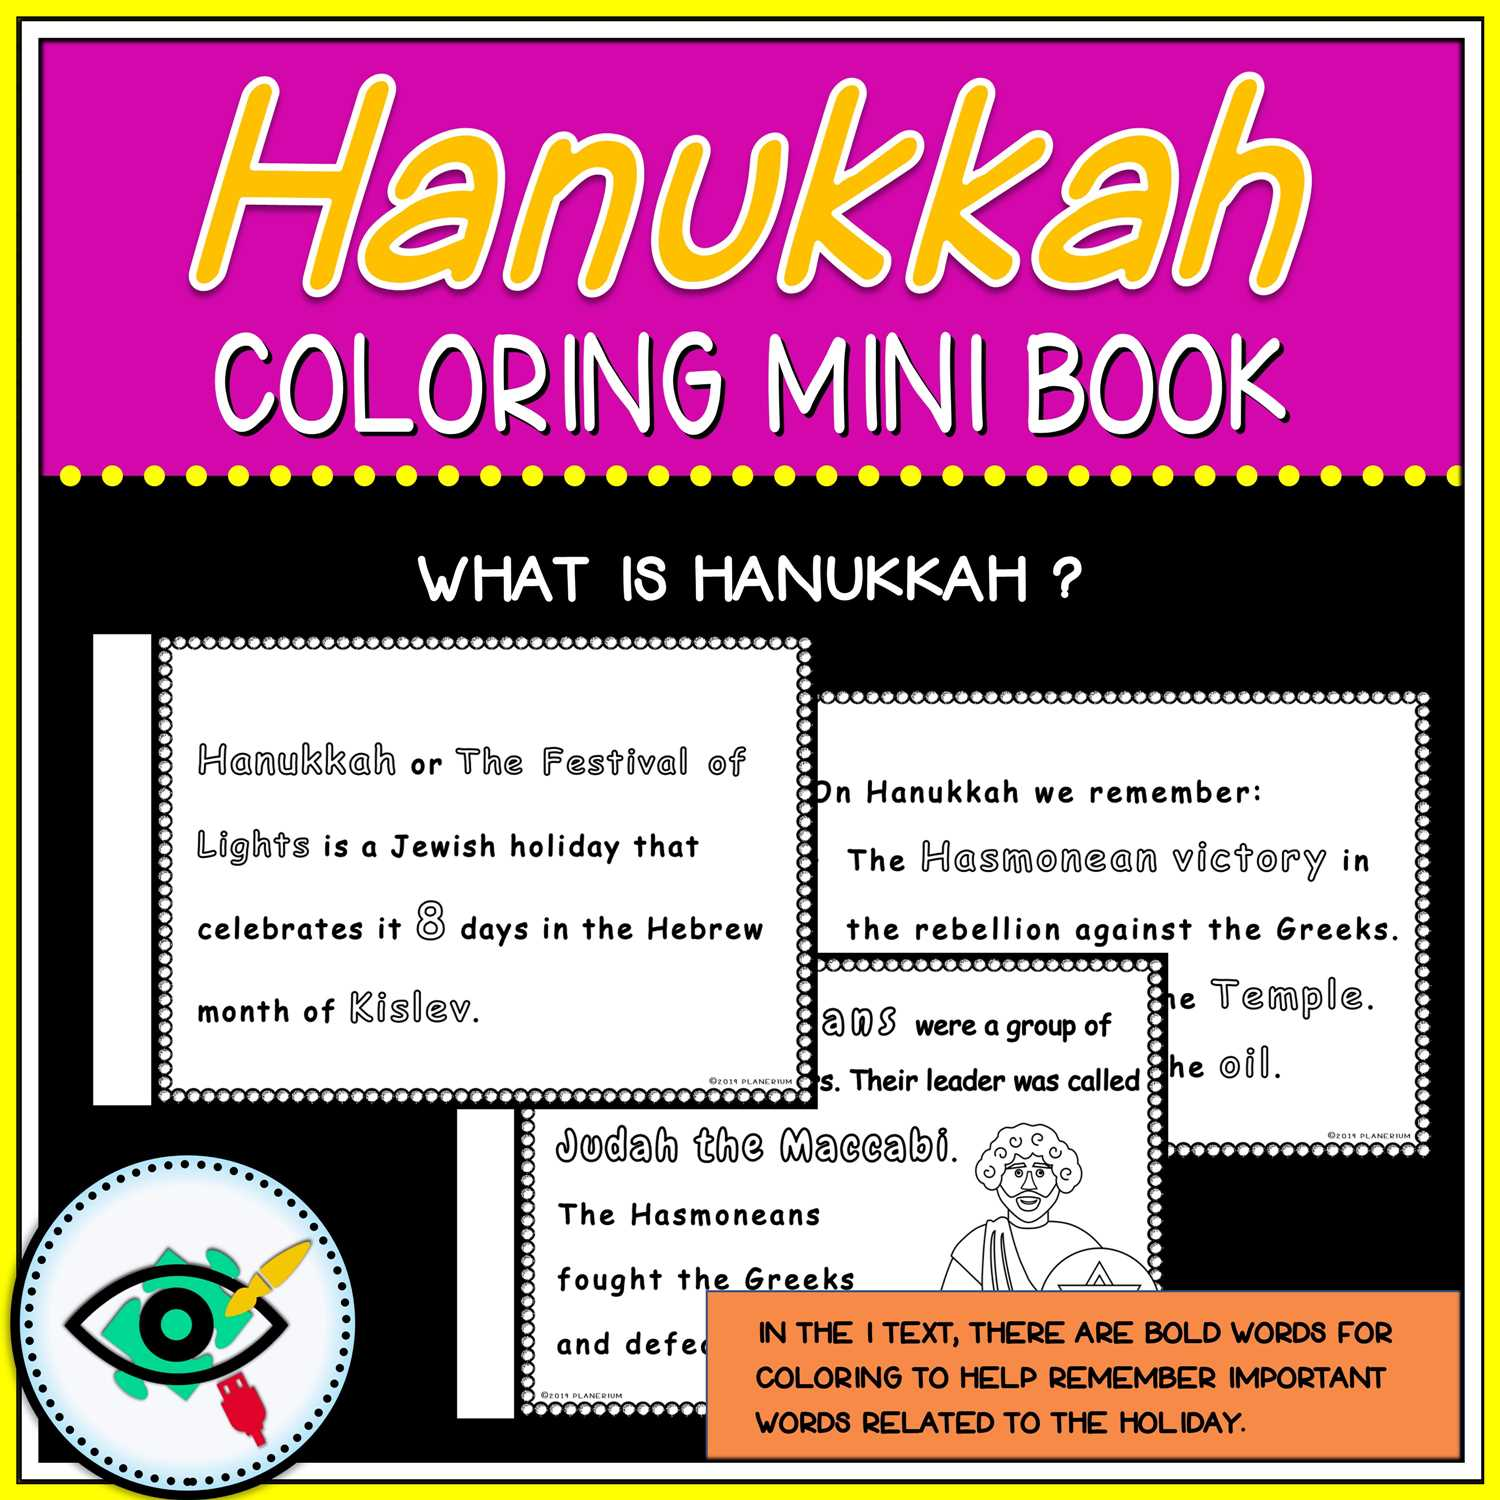 Hanukkah Coloring Pages - Mini Book - Featured Two | Planerium